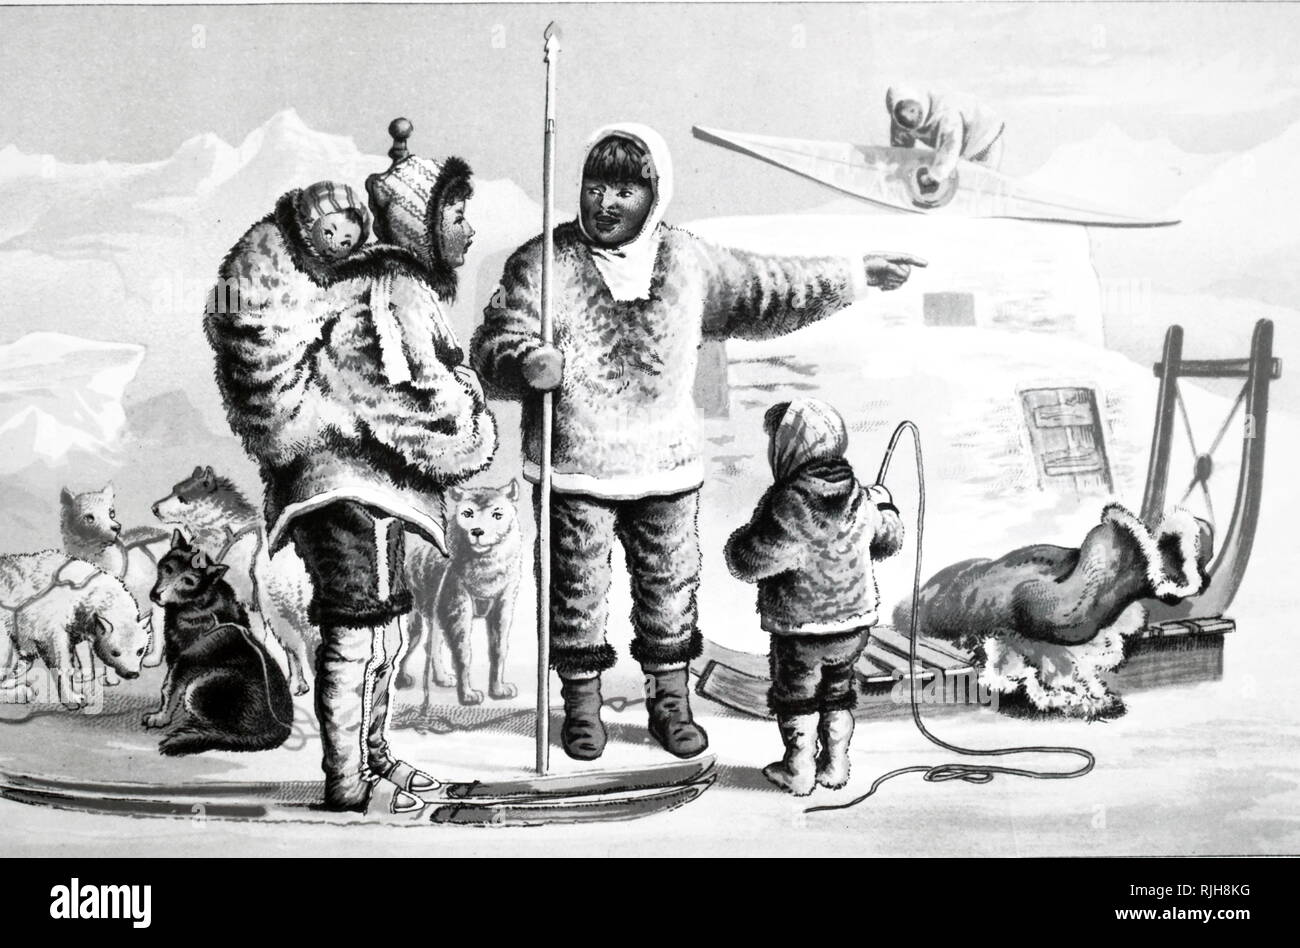 A chromolithograph depicting a family of Eskimos dressed in animal fur. Eskimo (Esquimaux) or Inuit-Yupik, indigenous peoples of the Arctic regions. Dated 19th century - Stock Image